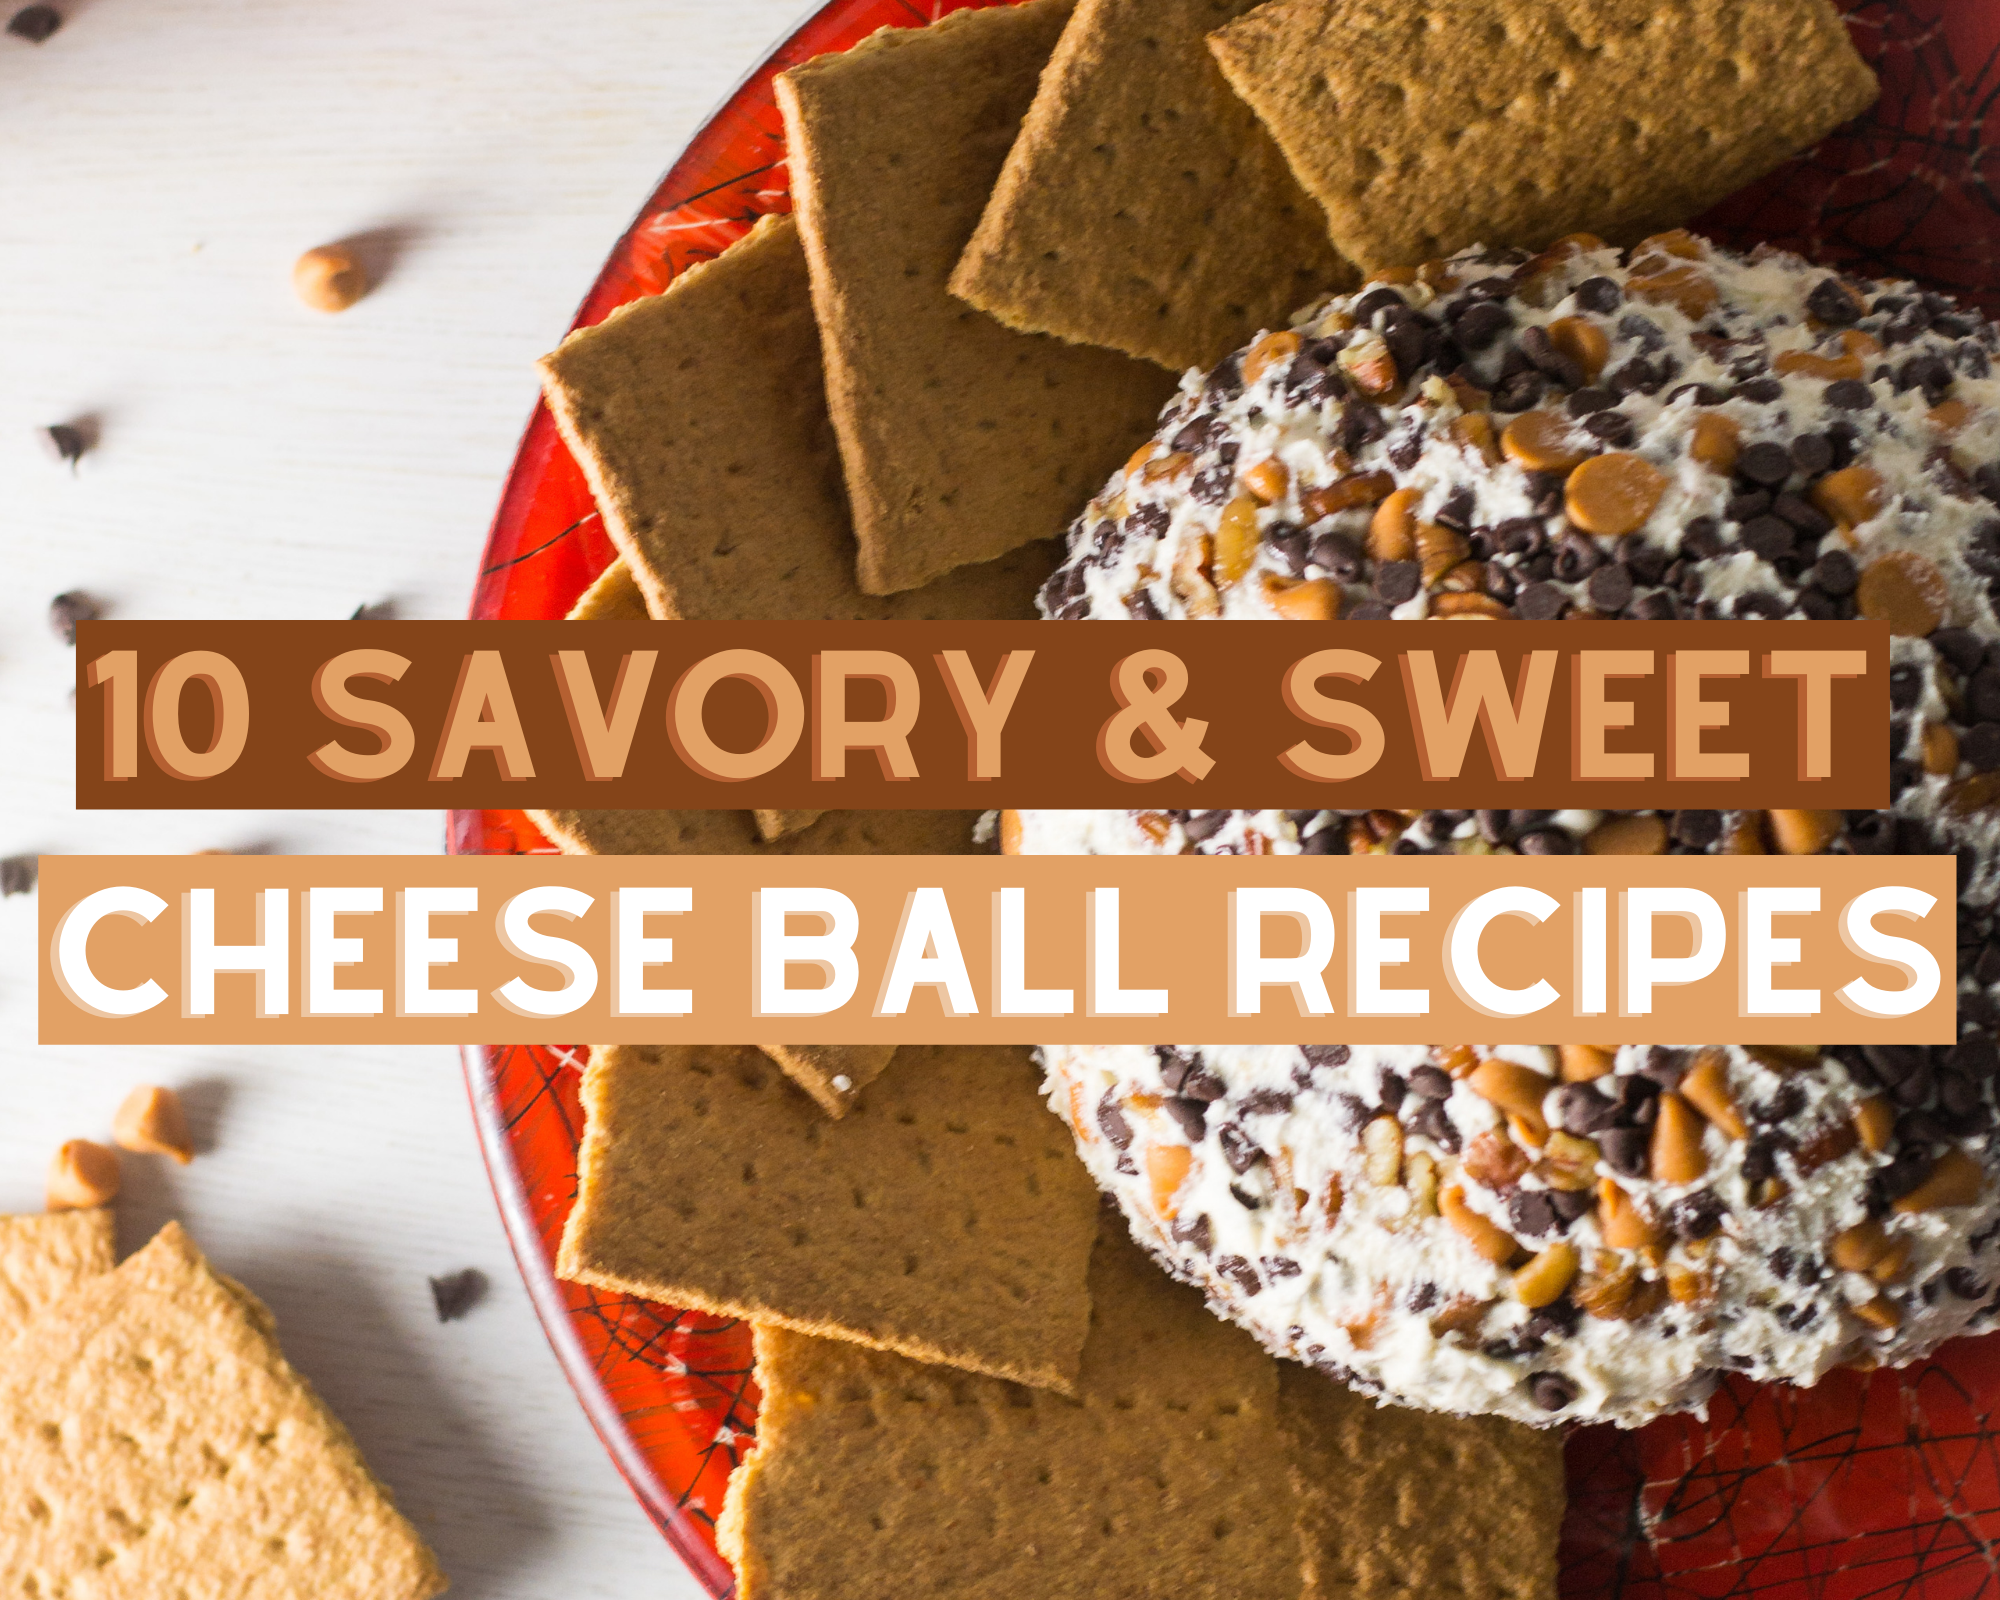 Savory and Sweet Cheese Ball Recipes